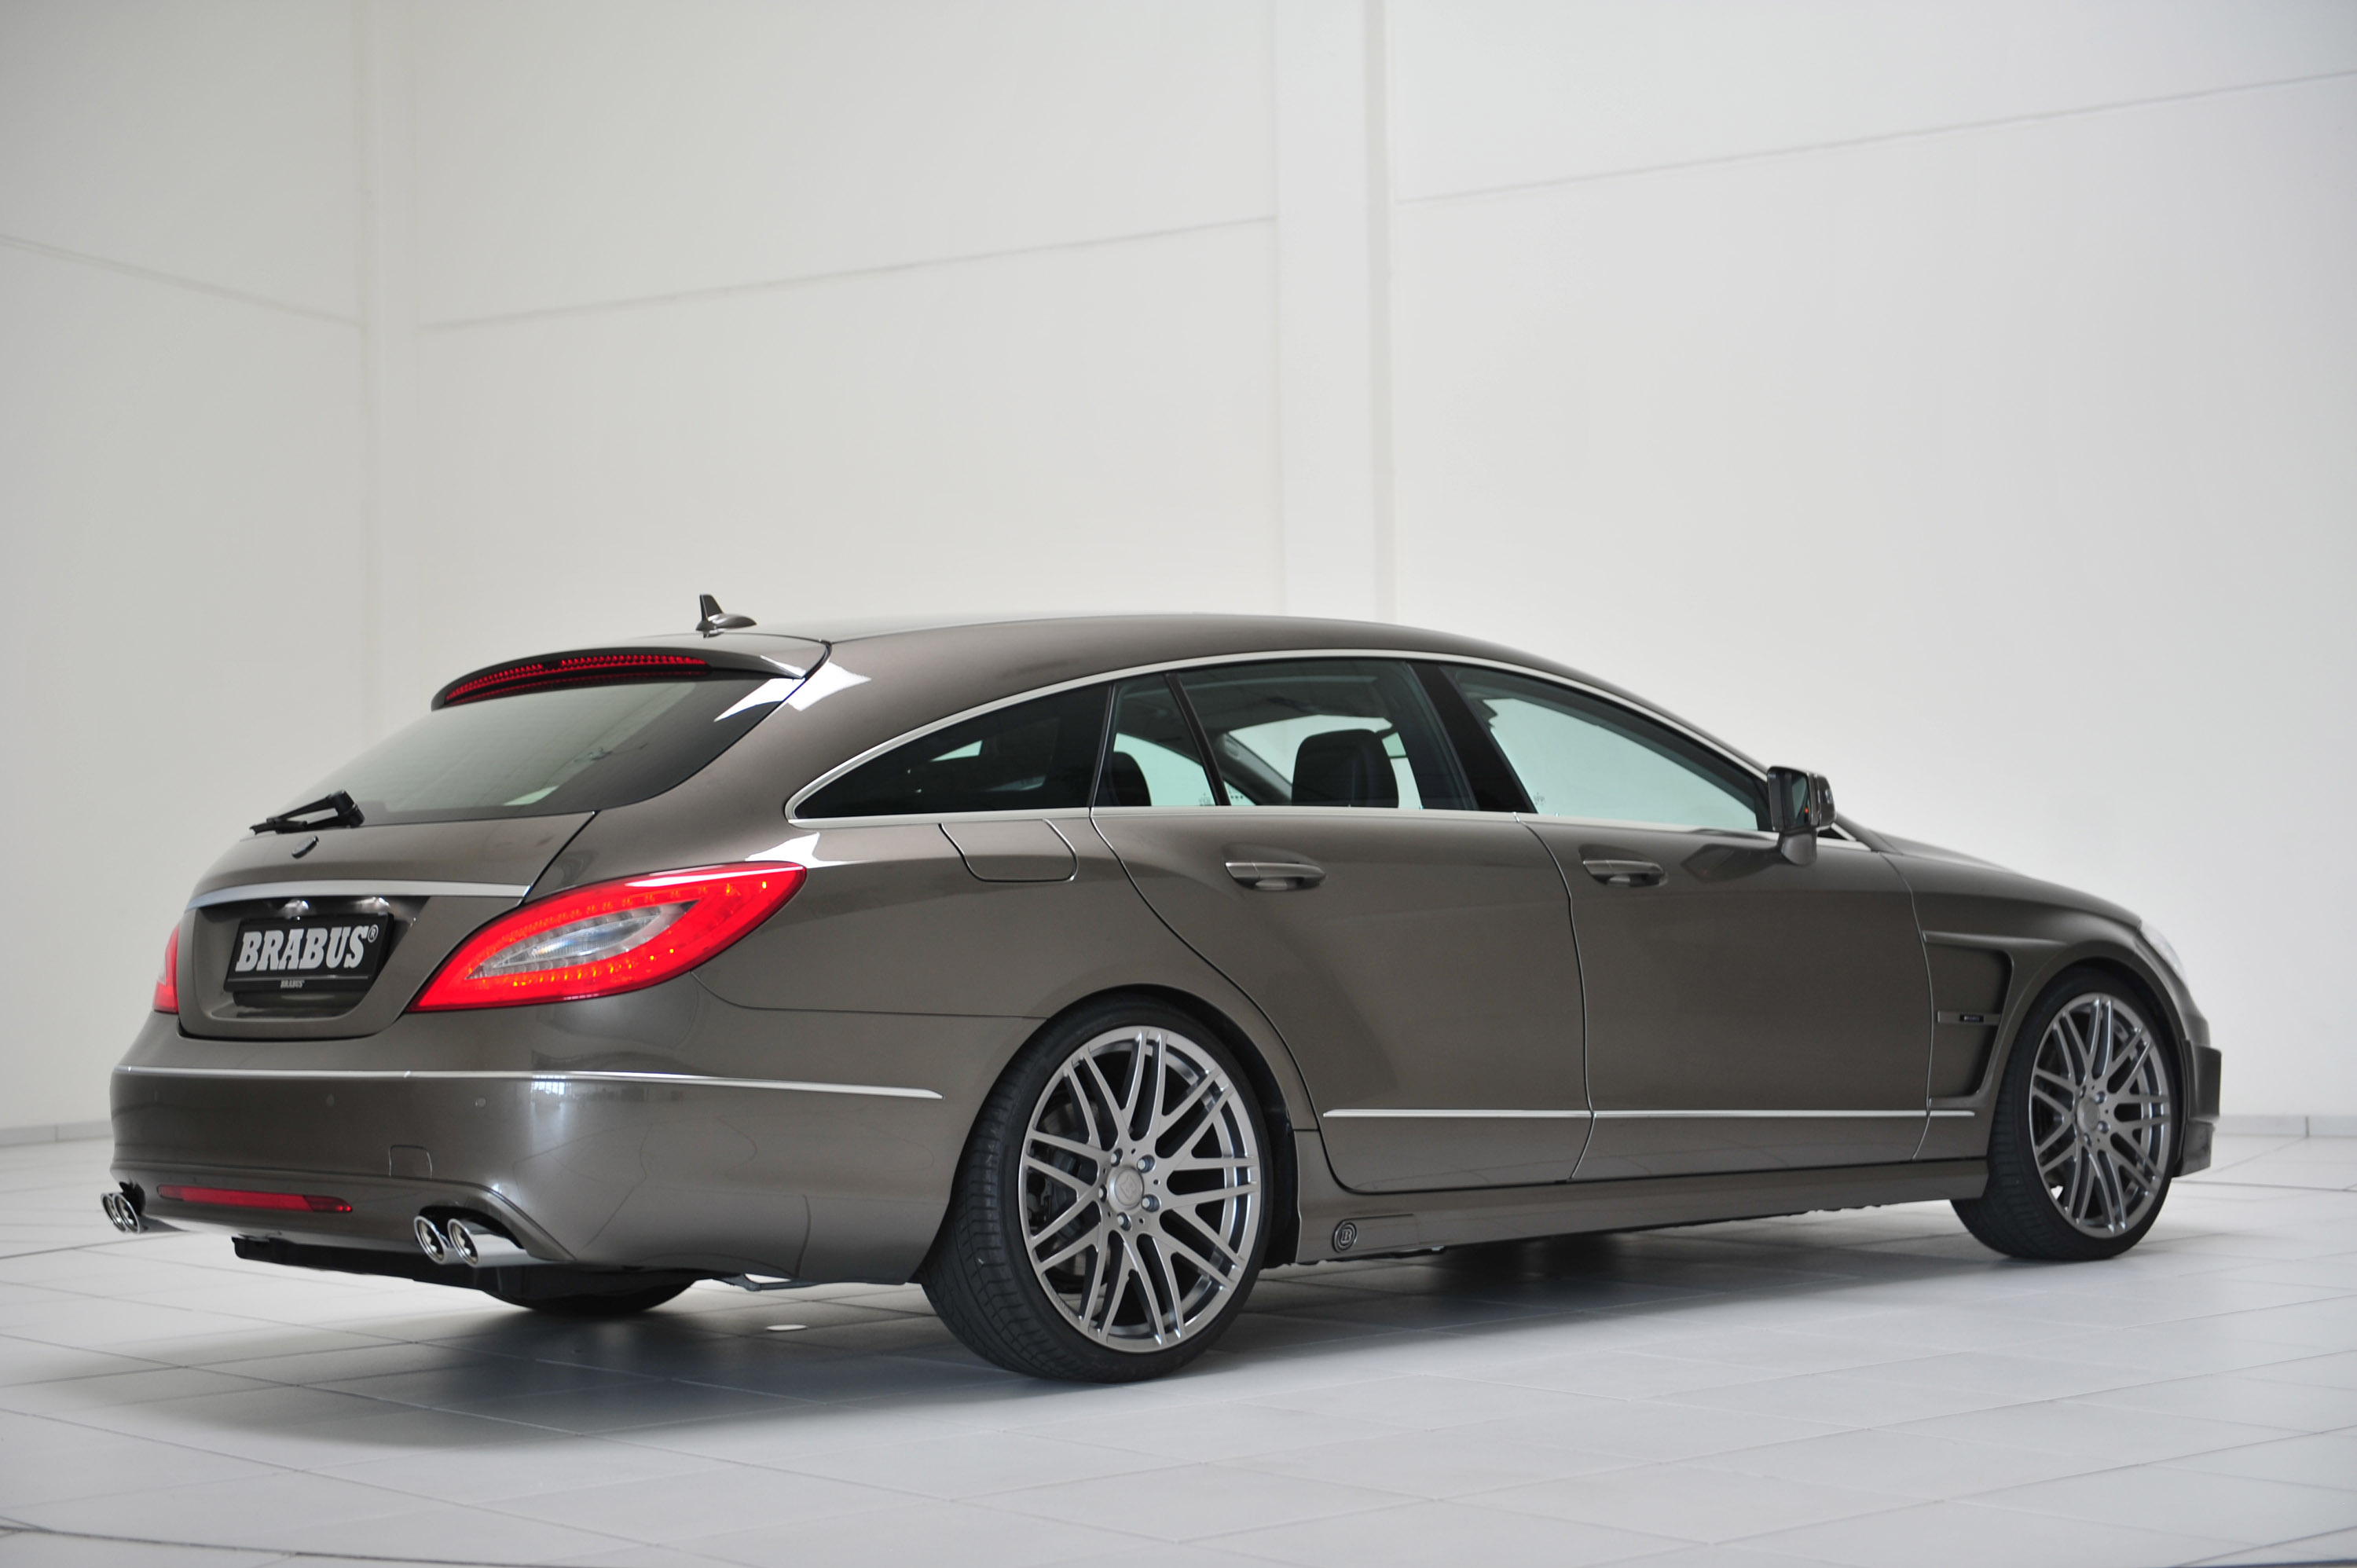 brabus 2013 mercedes benz cls shooting brake. Black Bedroom Furniture Sets. Home Design Ideas